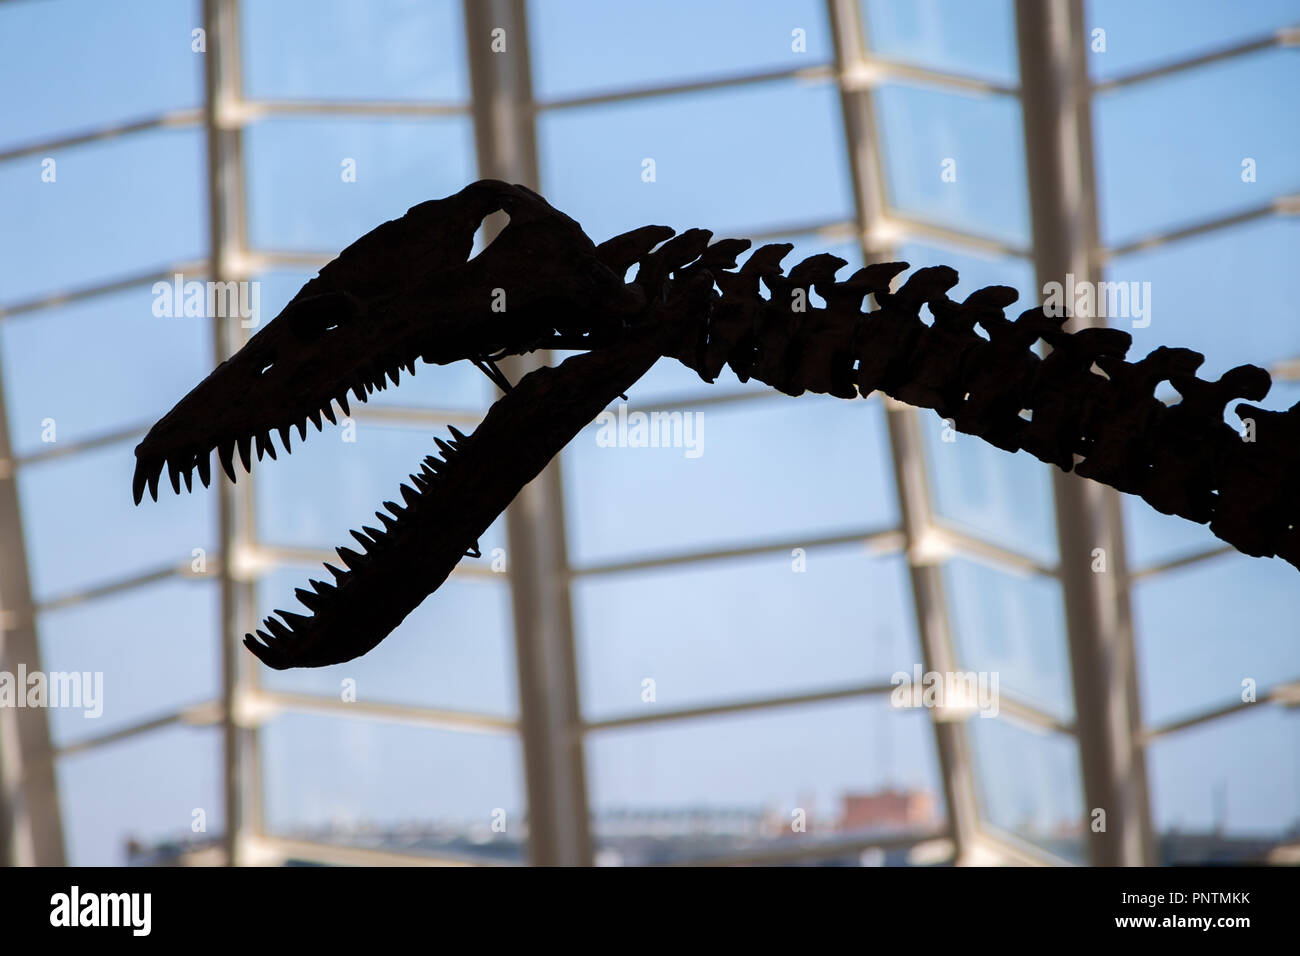 Dinosaur skeletons in the science museum in the City of Arts and Sciences in Valencia, Spain - Stock Image